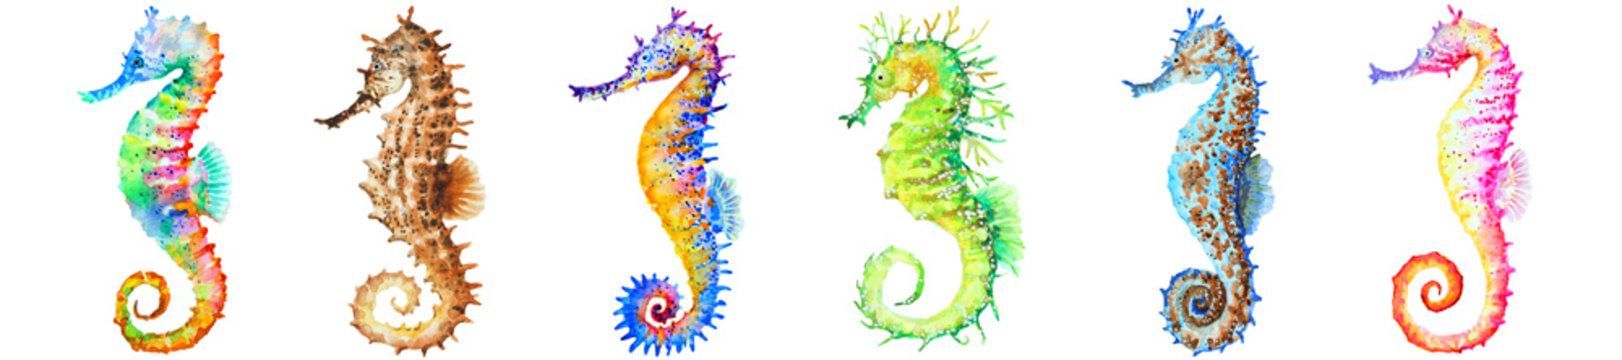 Group of colorful seahorses, panorama, watercolor.